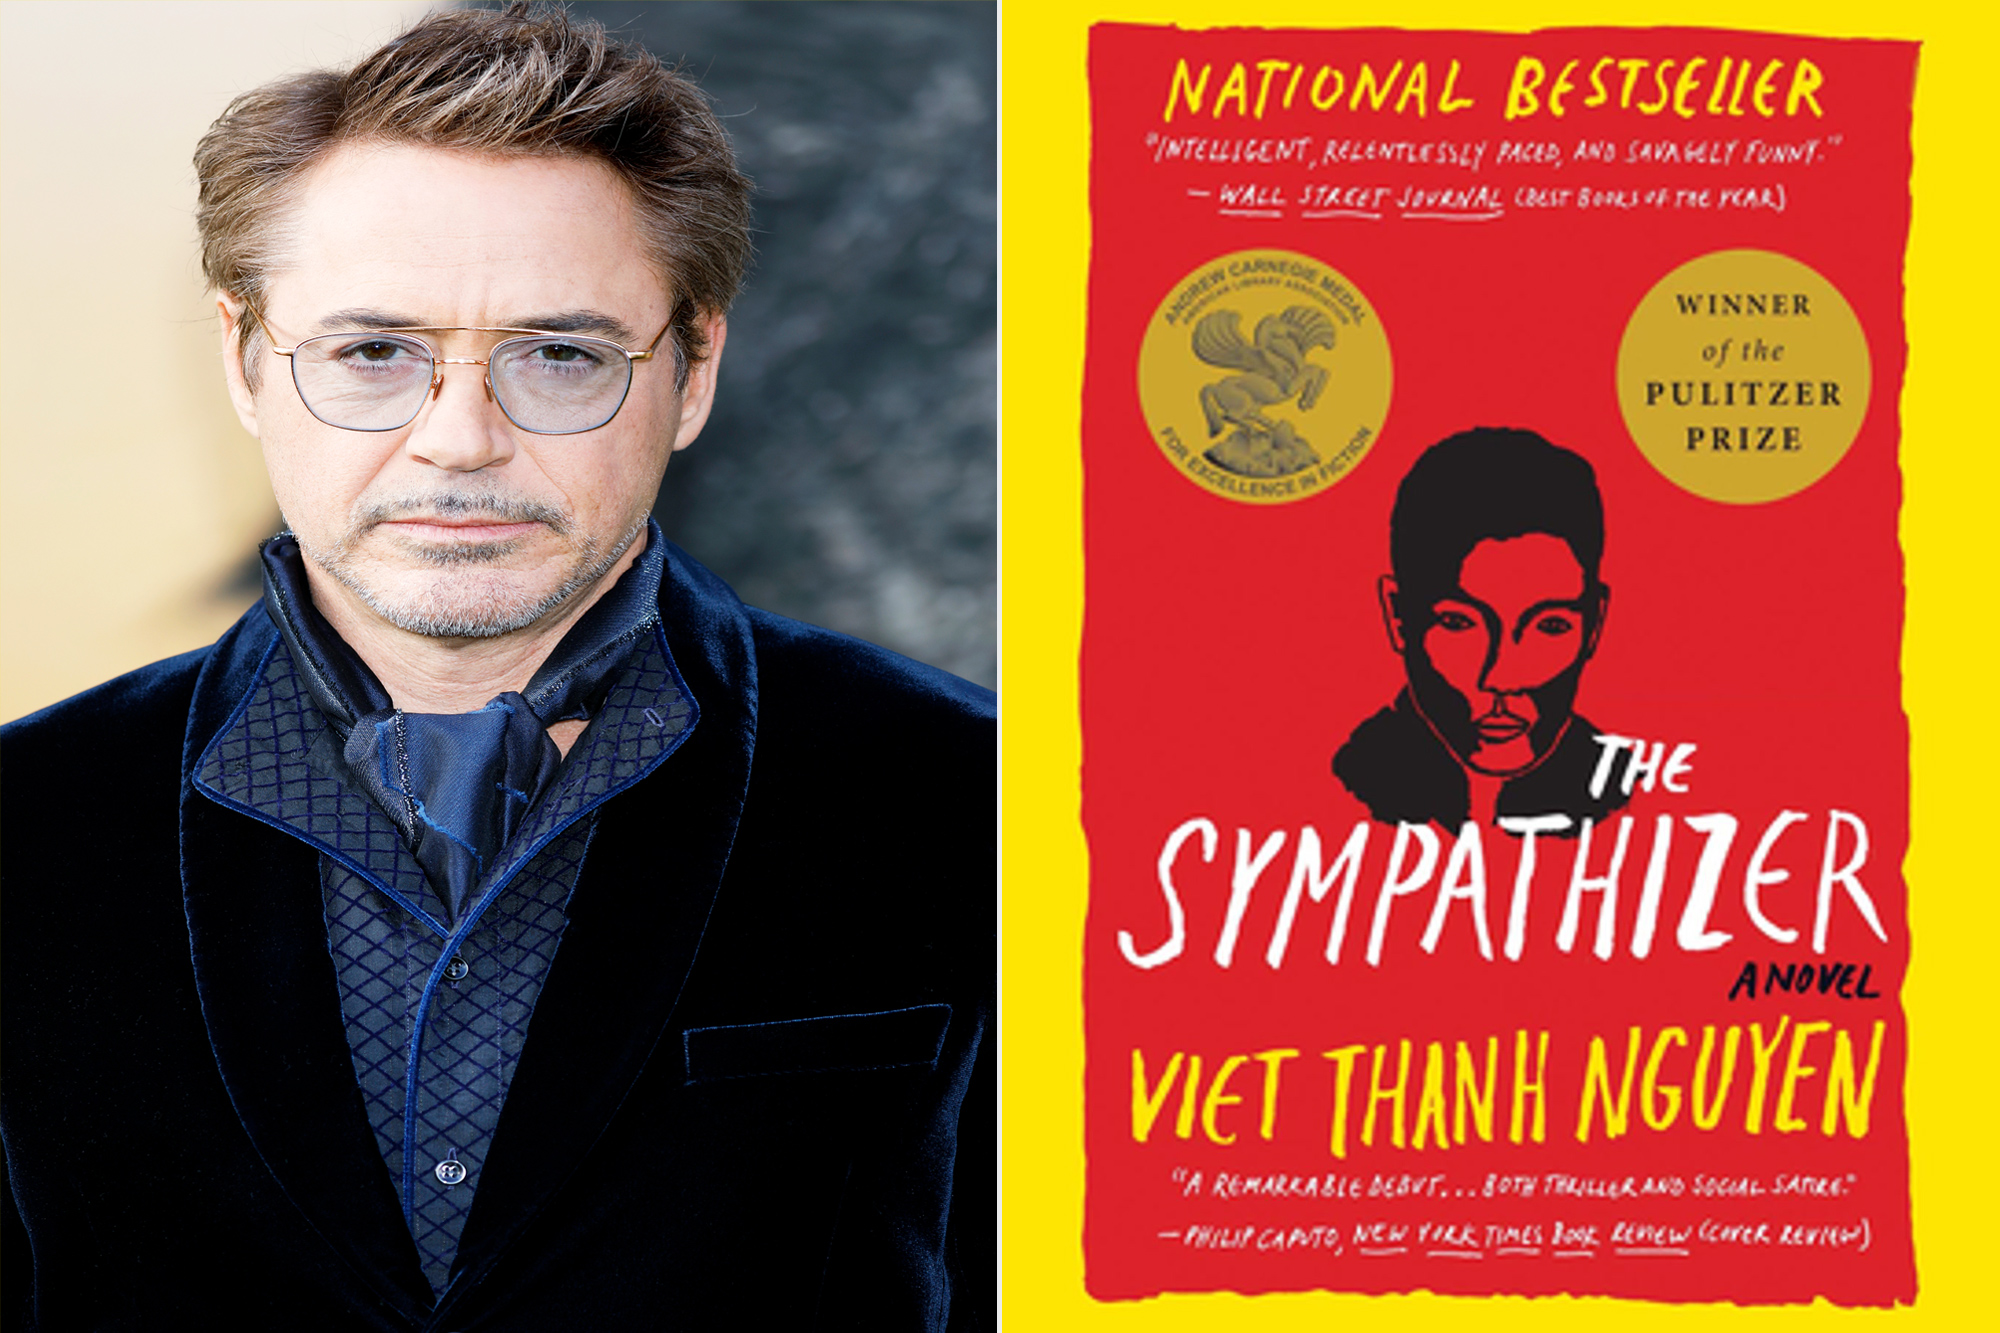 Robert Downey Jr and the cover of the Sympathizer book